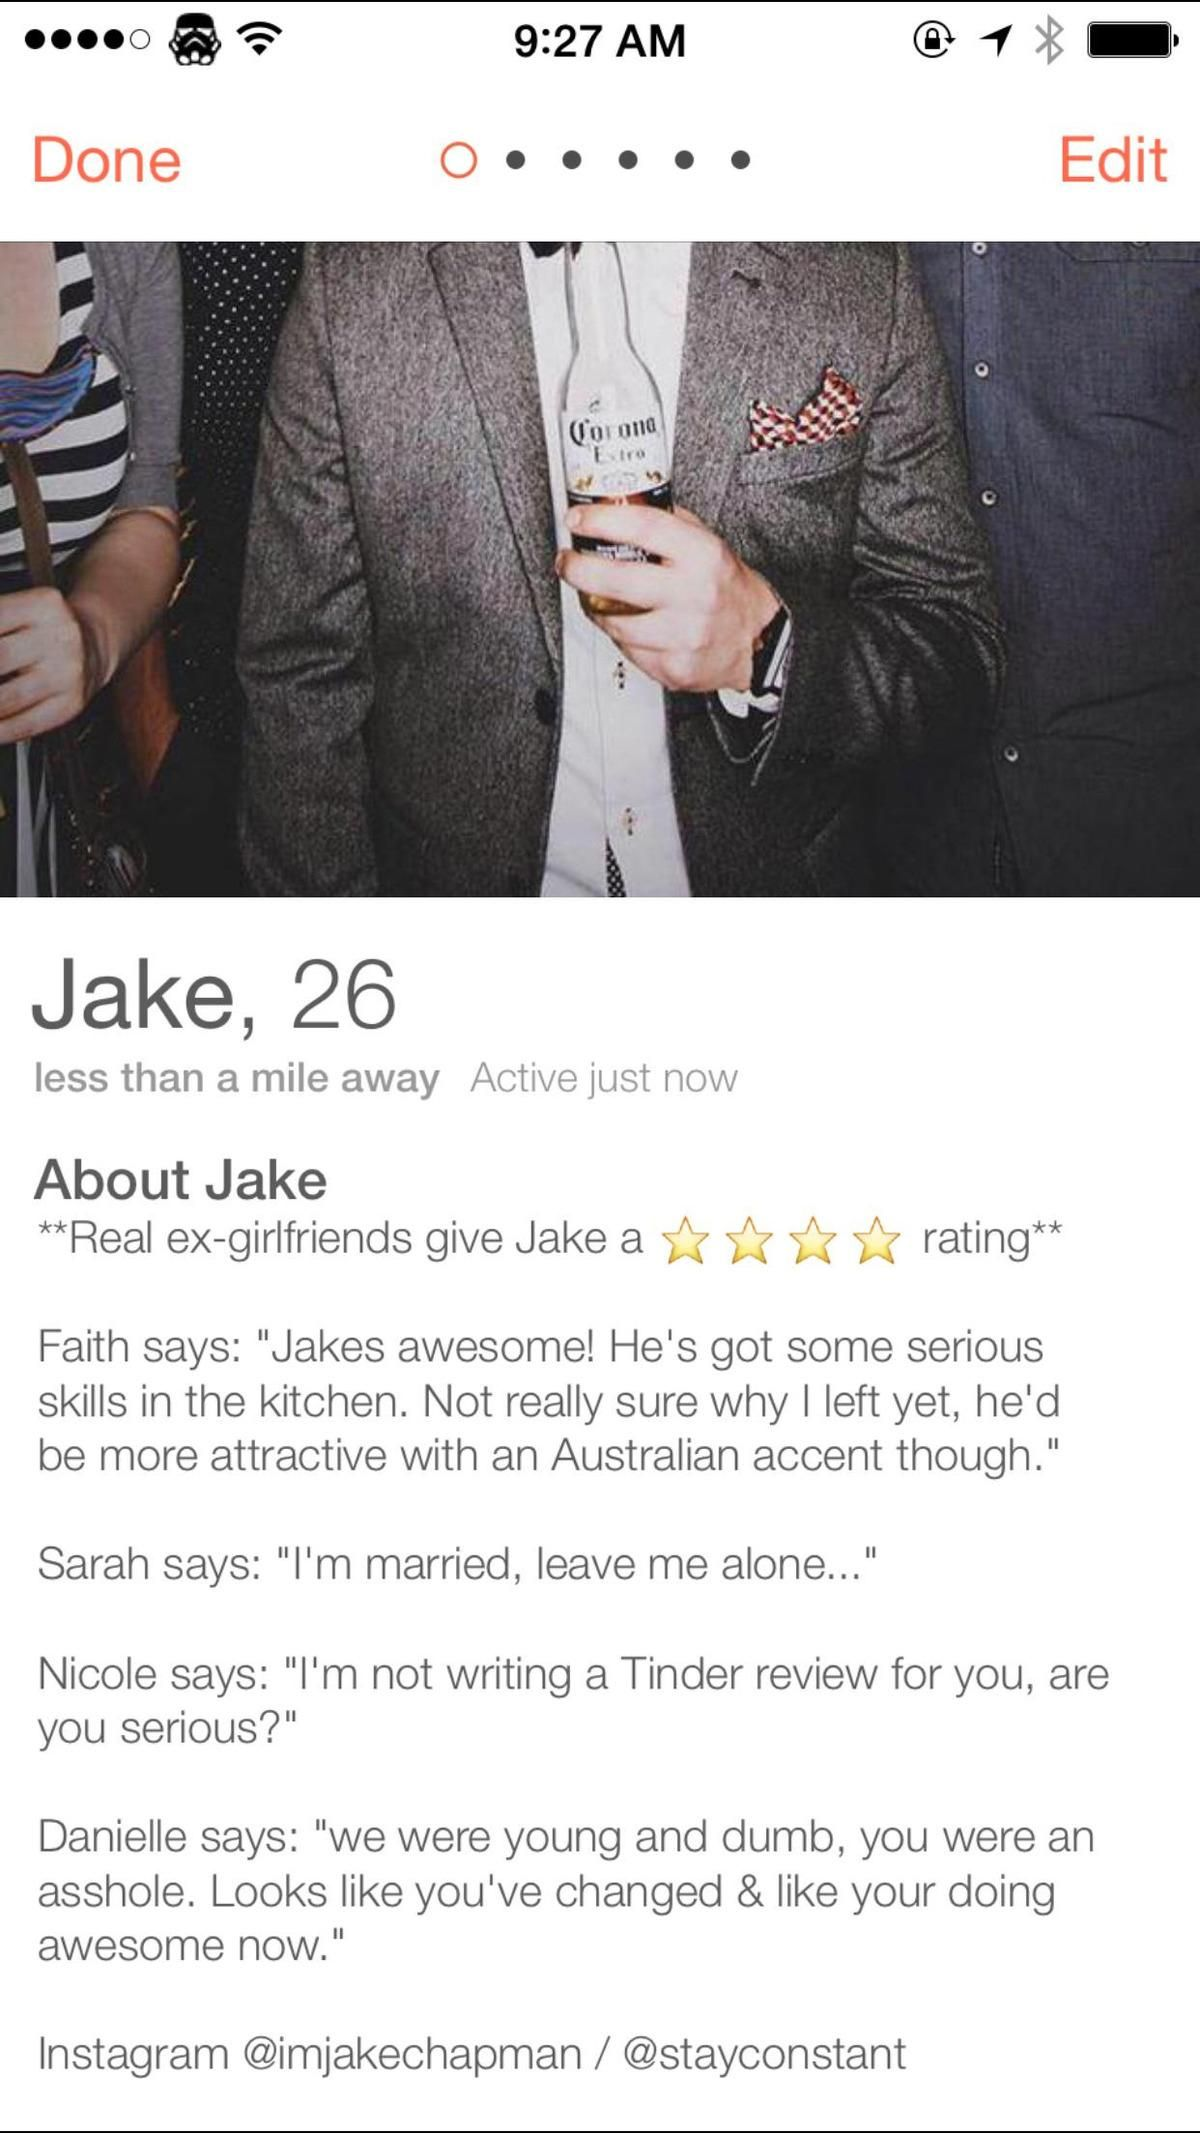 Man posts reviews from exgirlfriends on his Tinder